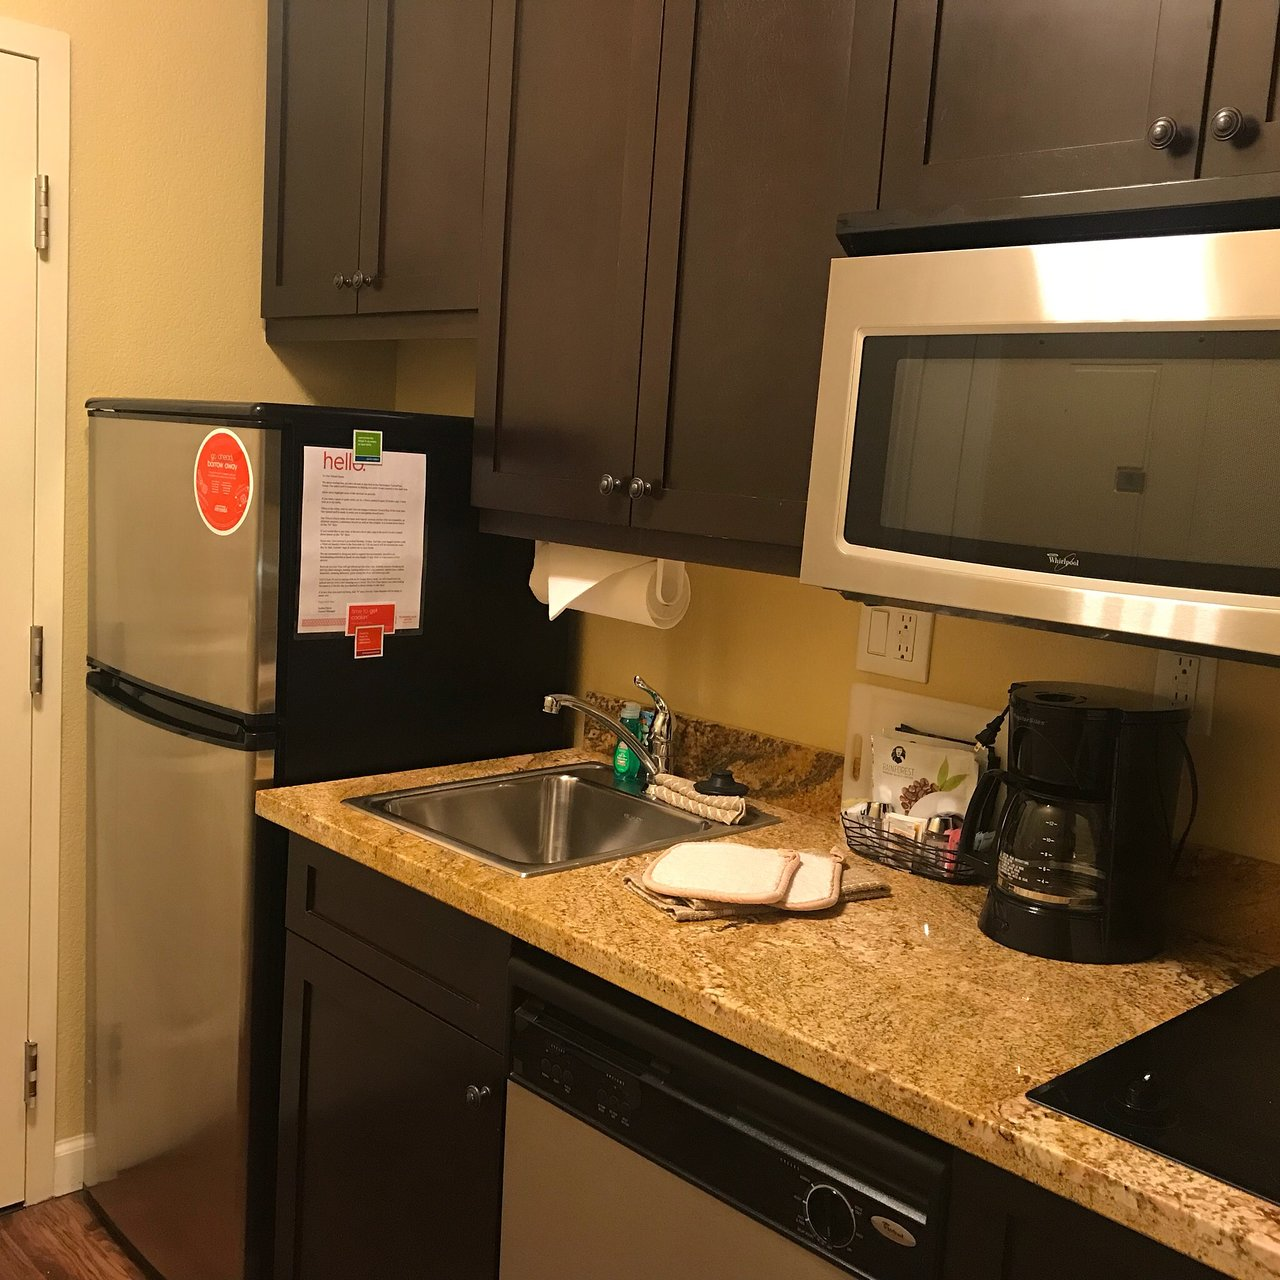 towneplace suites farmington 93 1 2 9 updated 2019 prices rh tripadvisor com